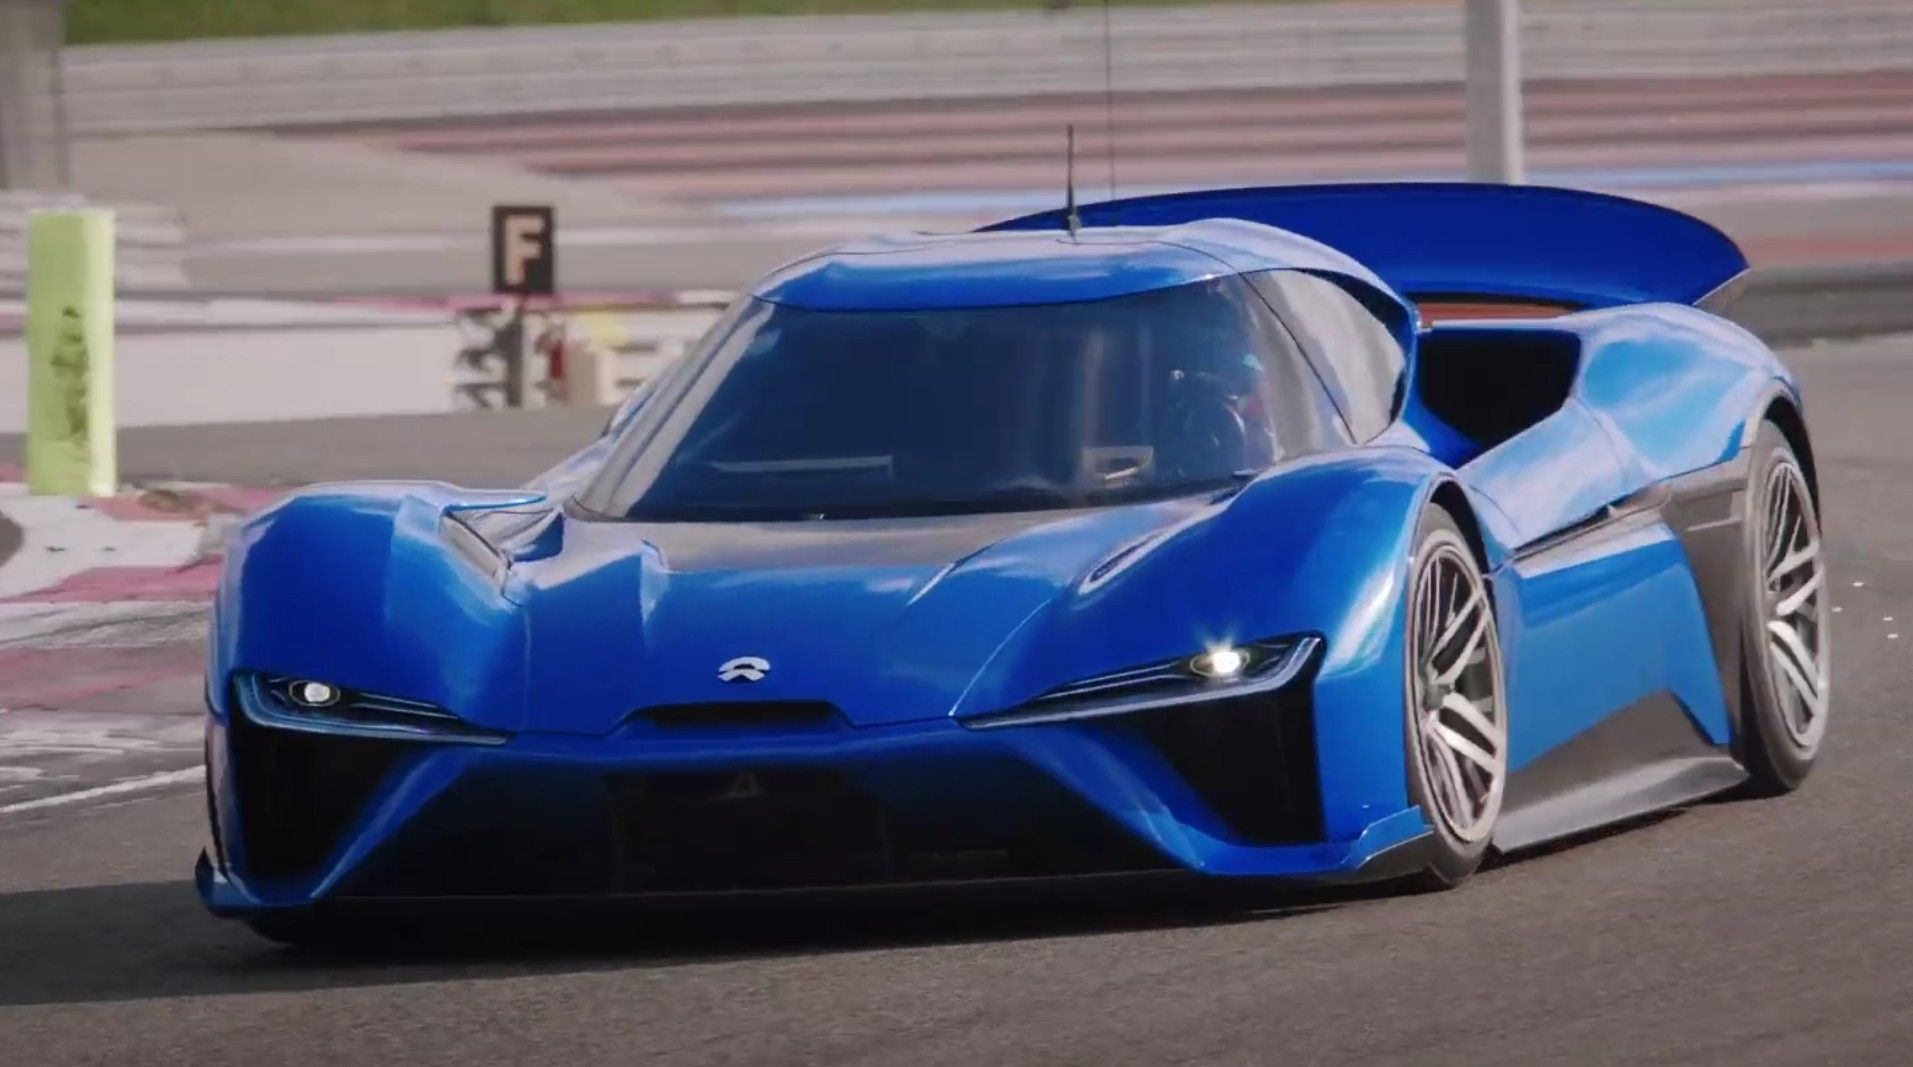 Chinese Electric Car Startup Nio Has Announced A Second Production Run For Its Ep9 Supercar Nio Made The Announcement On Wedn Car Super Cars All Electric Cars